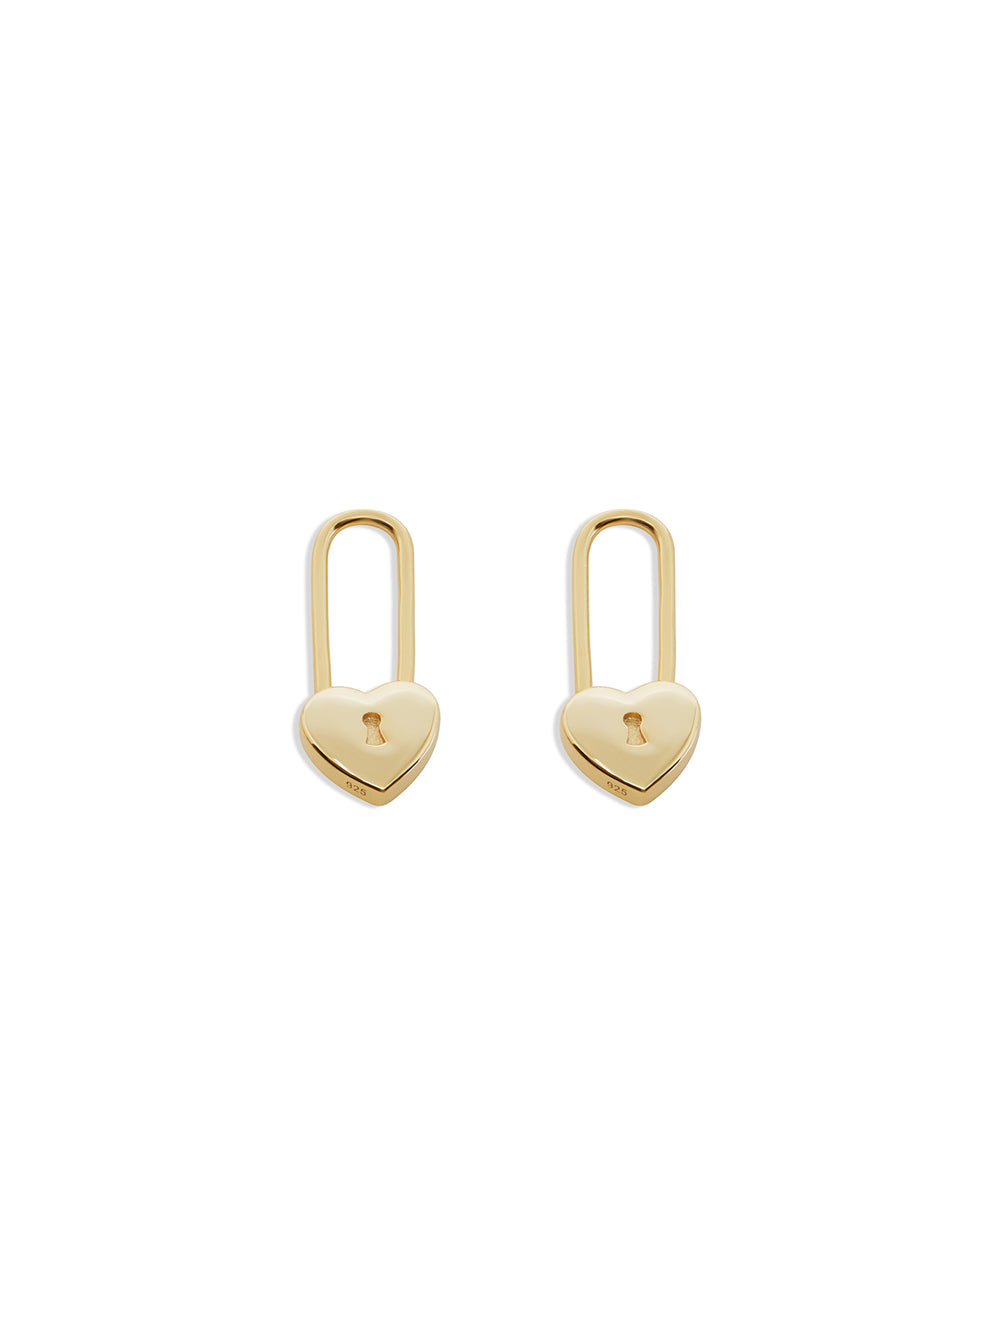 THE HEART LOCK EARRINGS